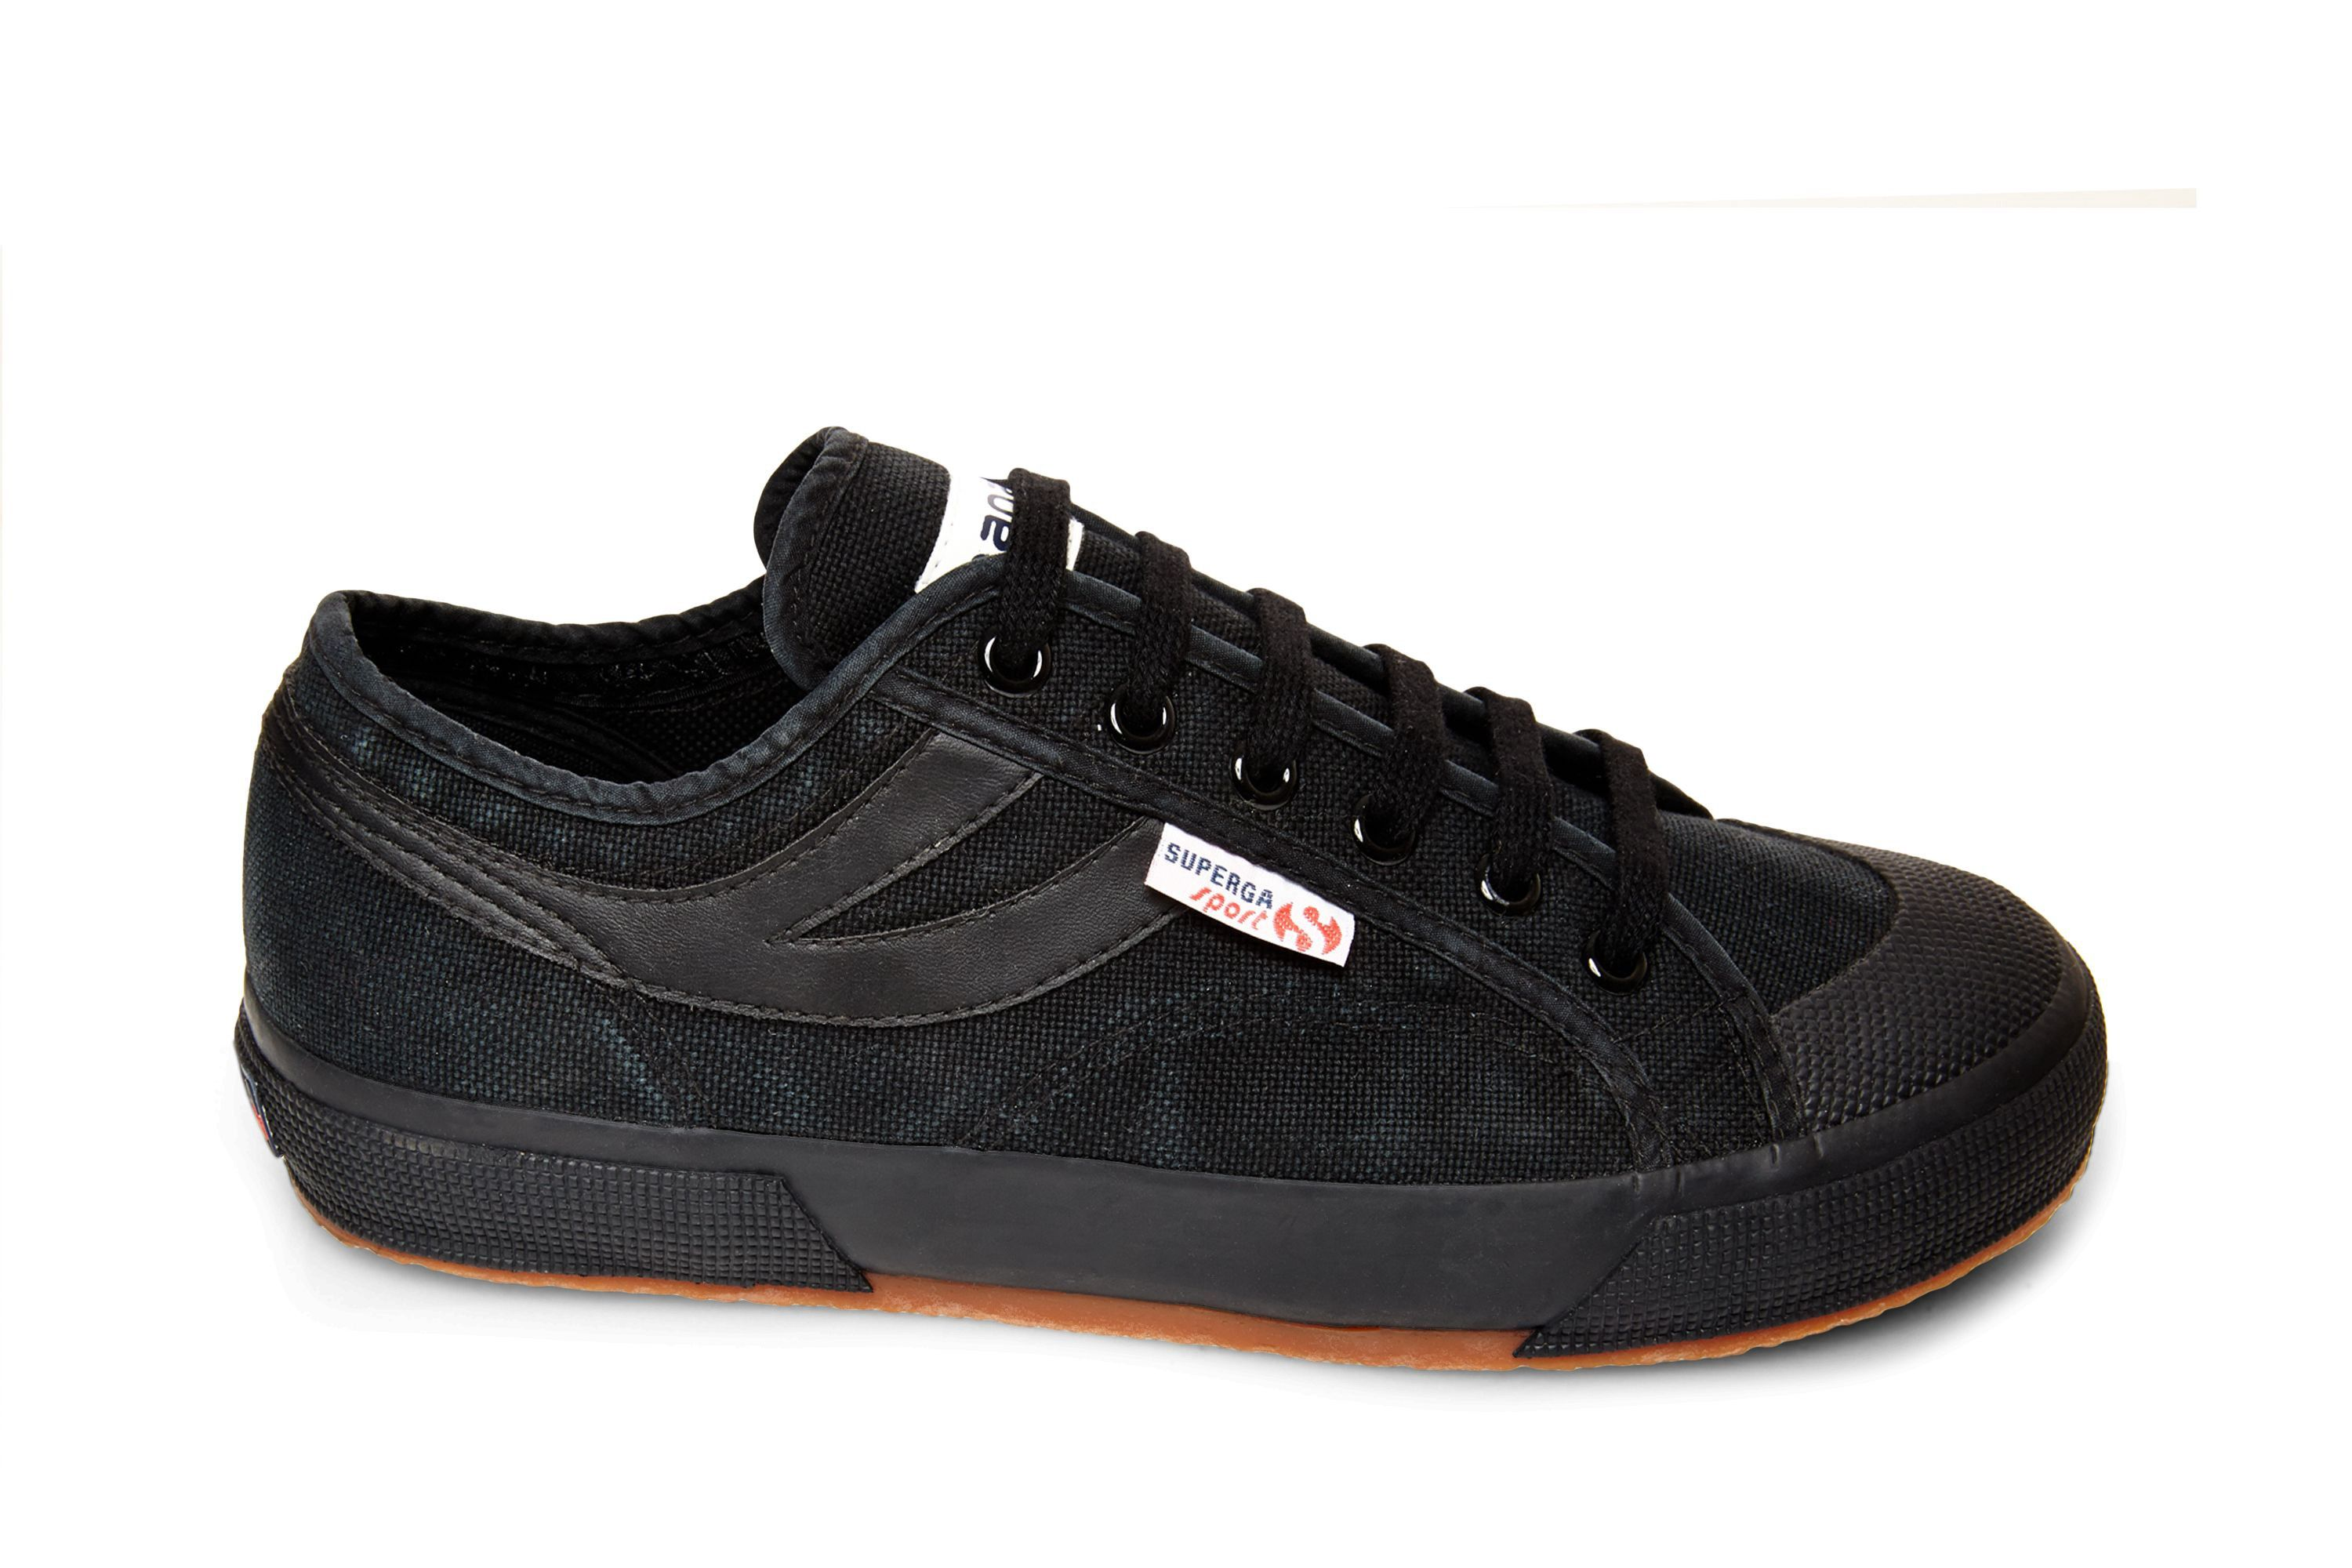 2750 COTU PANATTA - This retro-inspired Superga sneaker captures that  perfect blend of classic and cool. These textile laceups feature a sleek,  ...